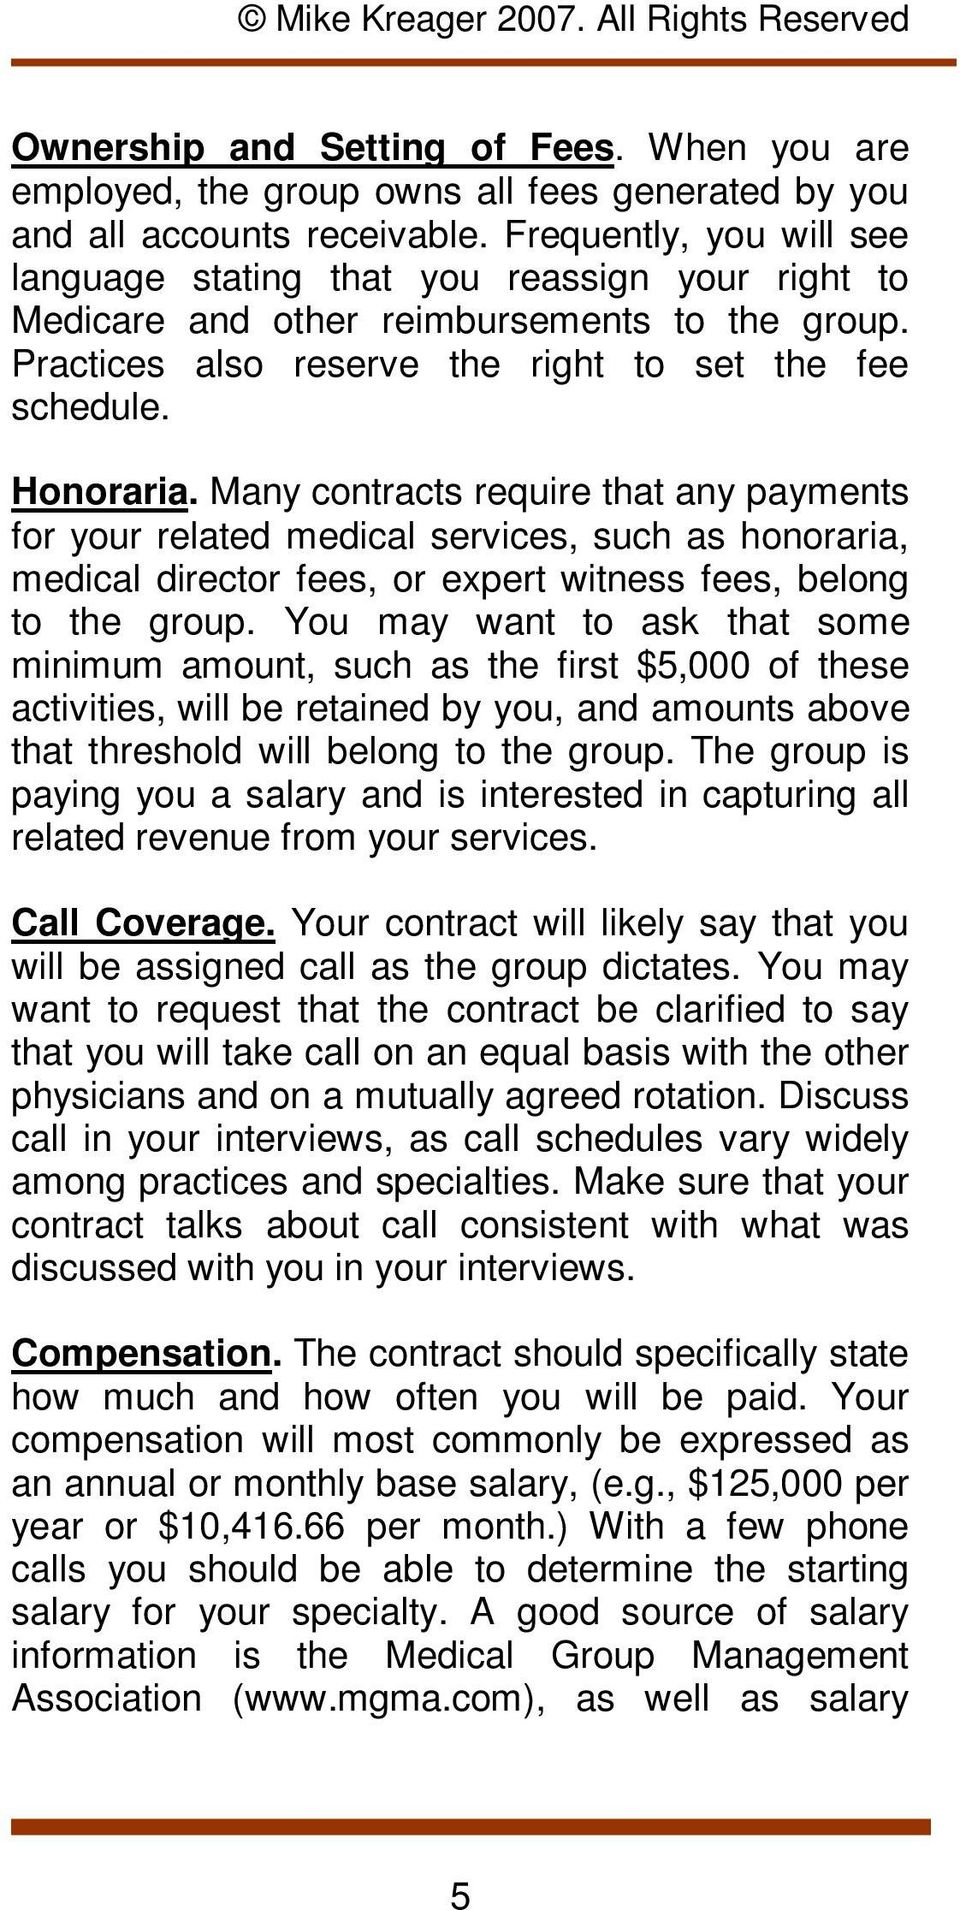 Many contracts require that any payments for your related medical services, such as honoraria, medical director fees, or expert witness fees, belong to the group.